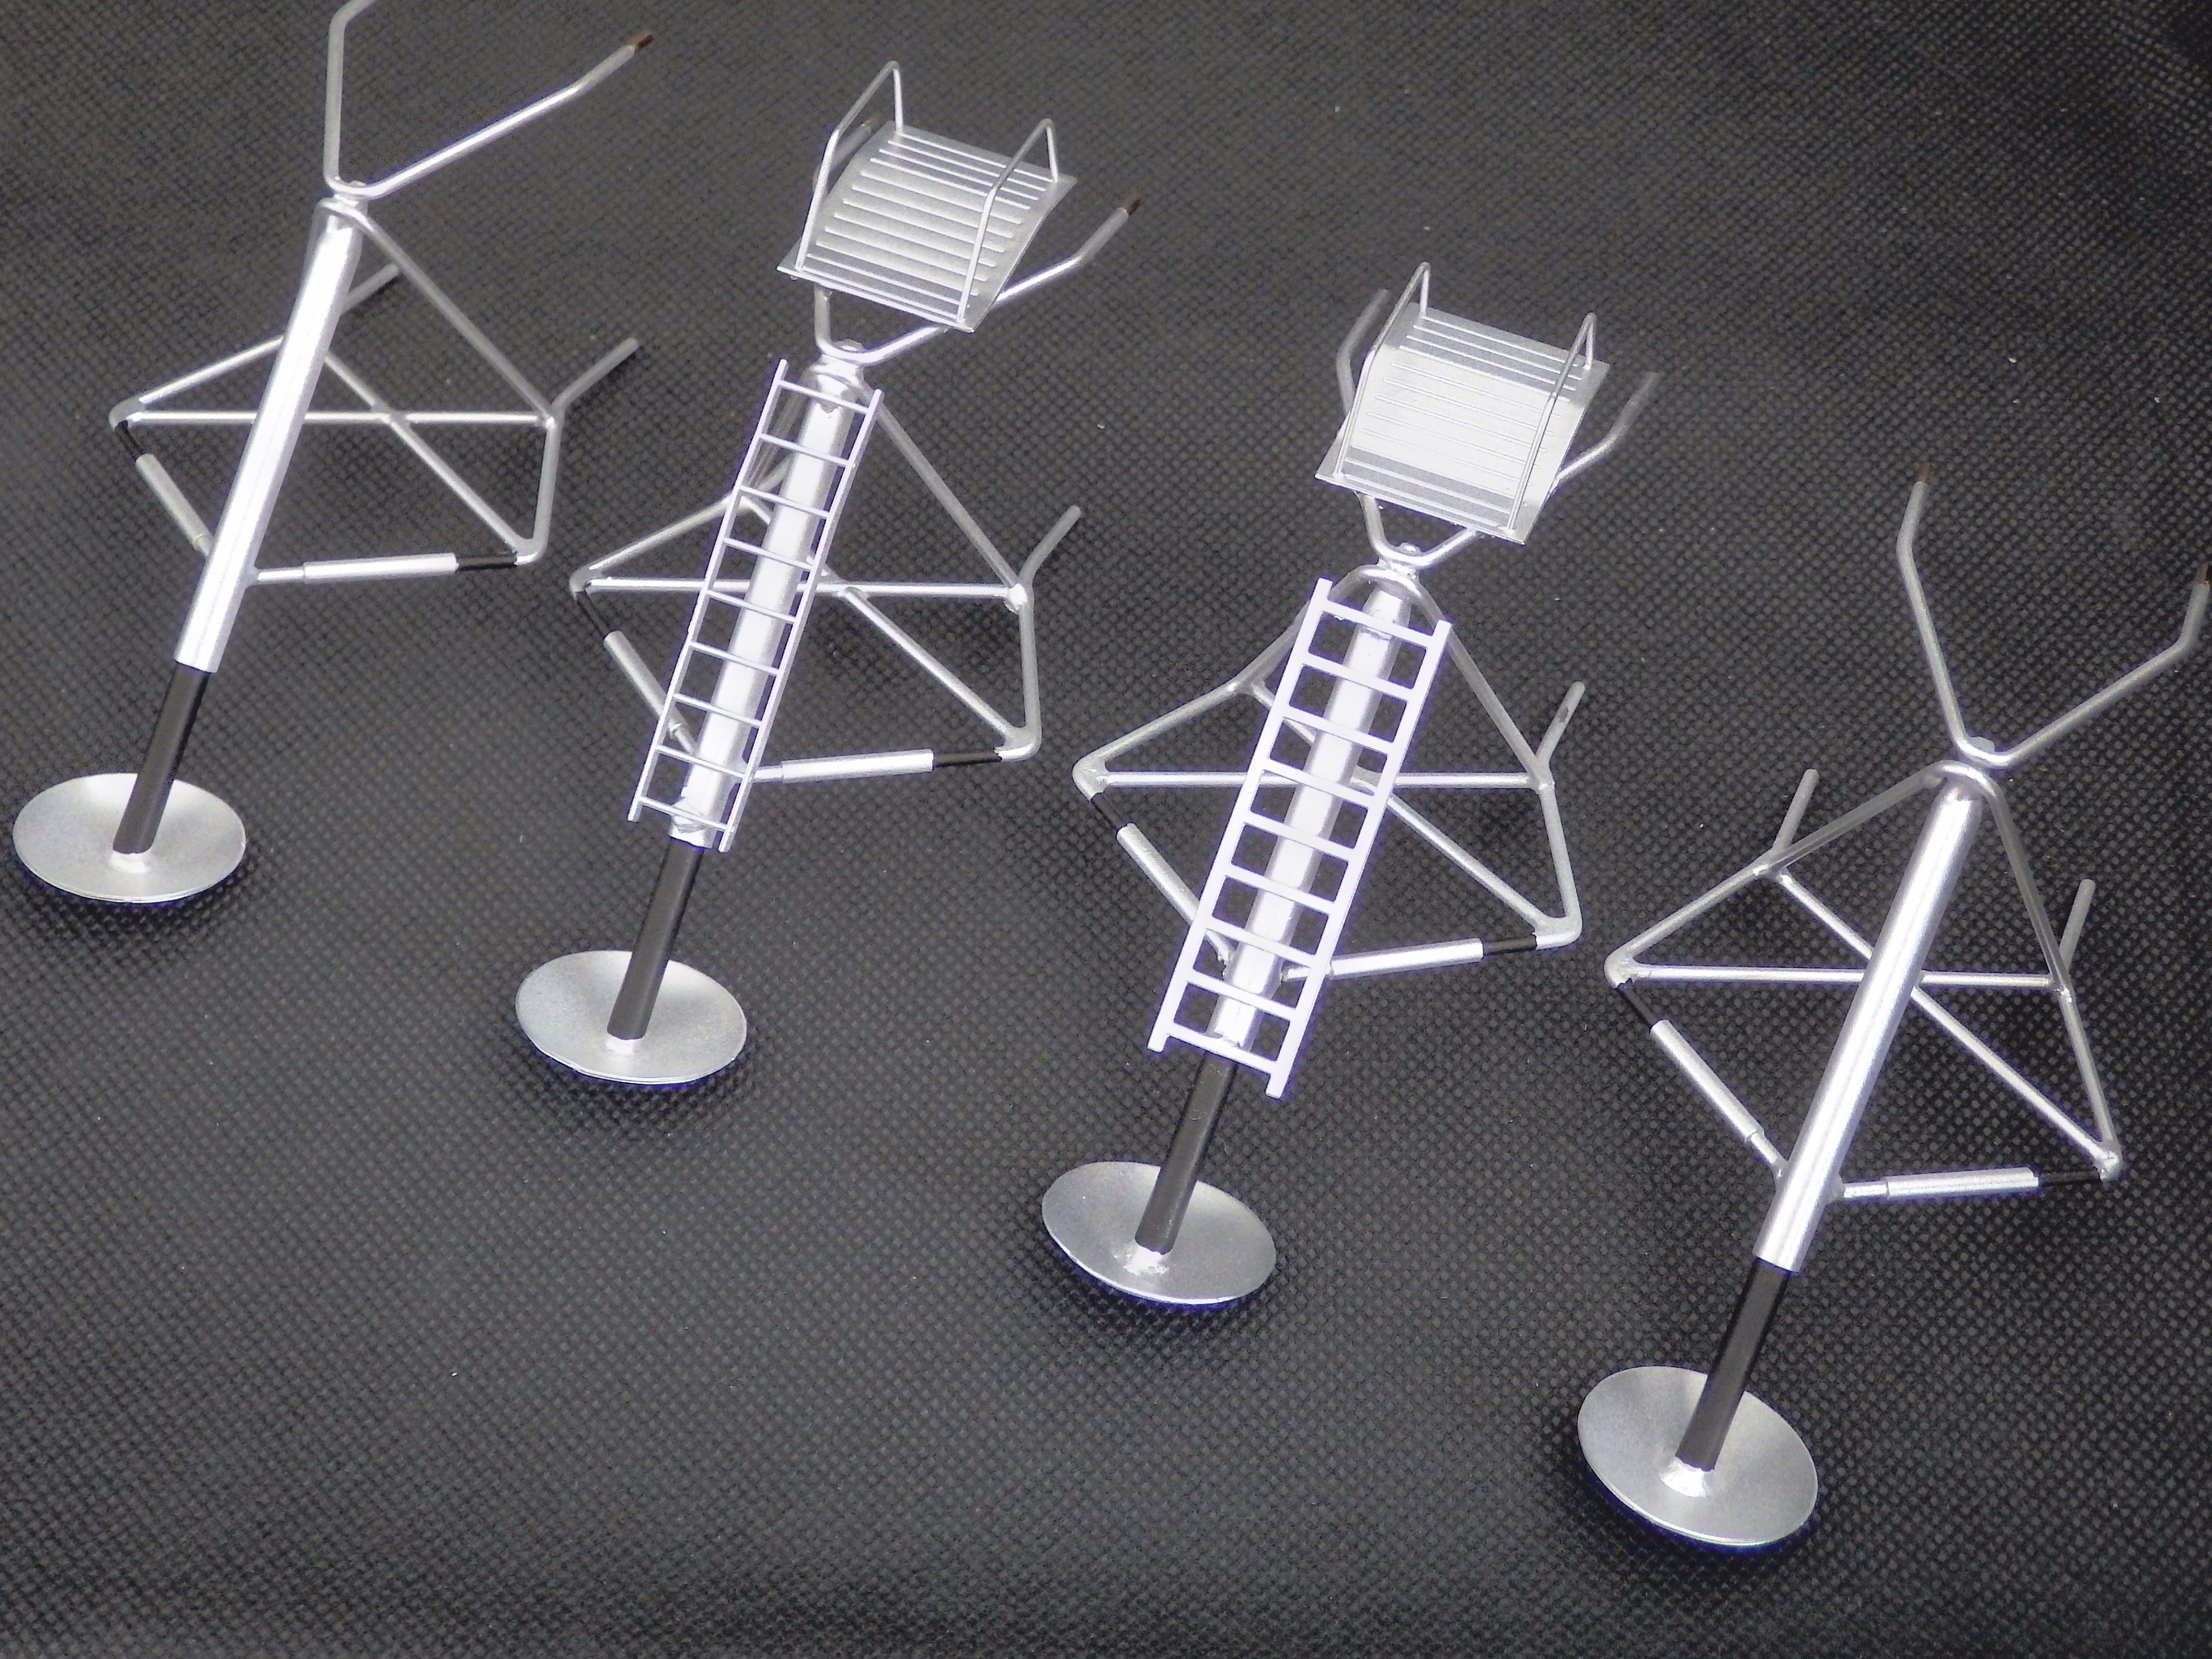 Replacement legs for 'Original' 1966 LEM Contractors Models